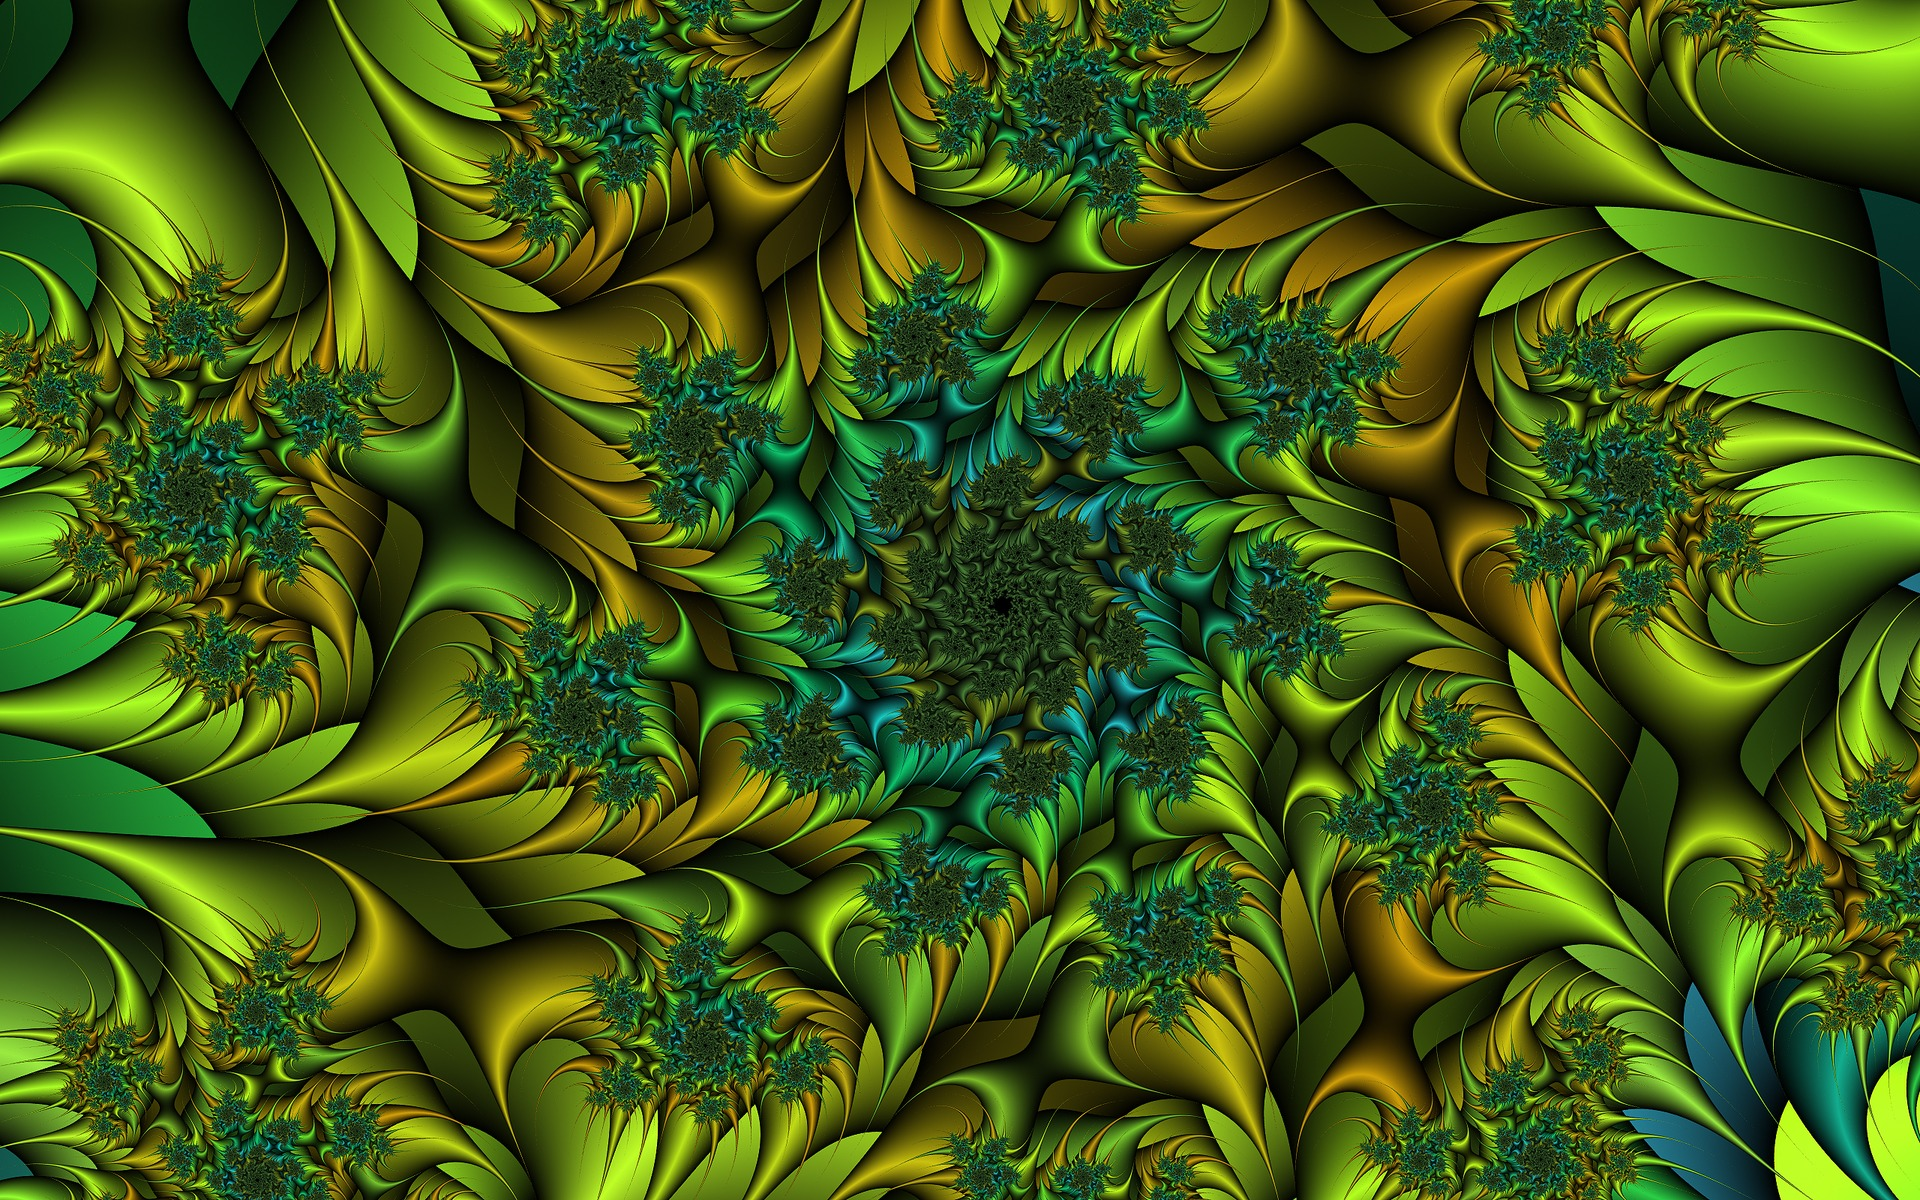 Animated Jungle Wallpaper Amazing Green Fractal Flower Wallpapers Amazing Green